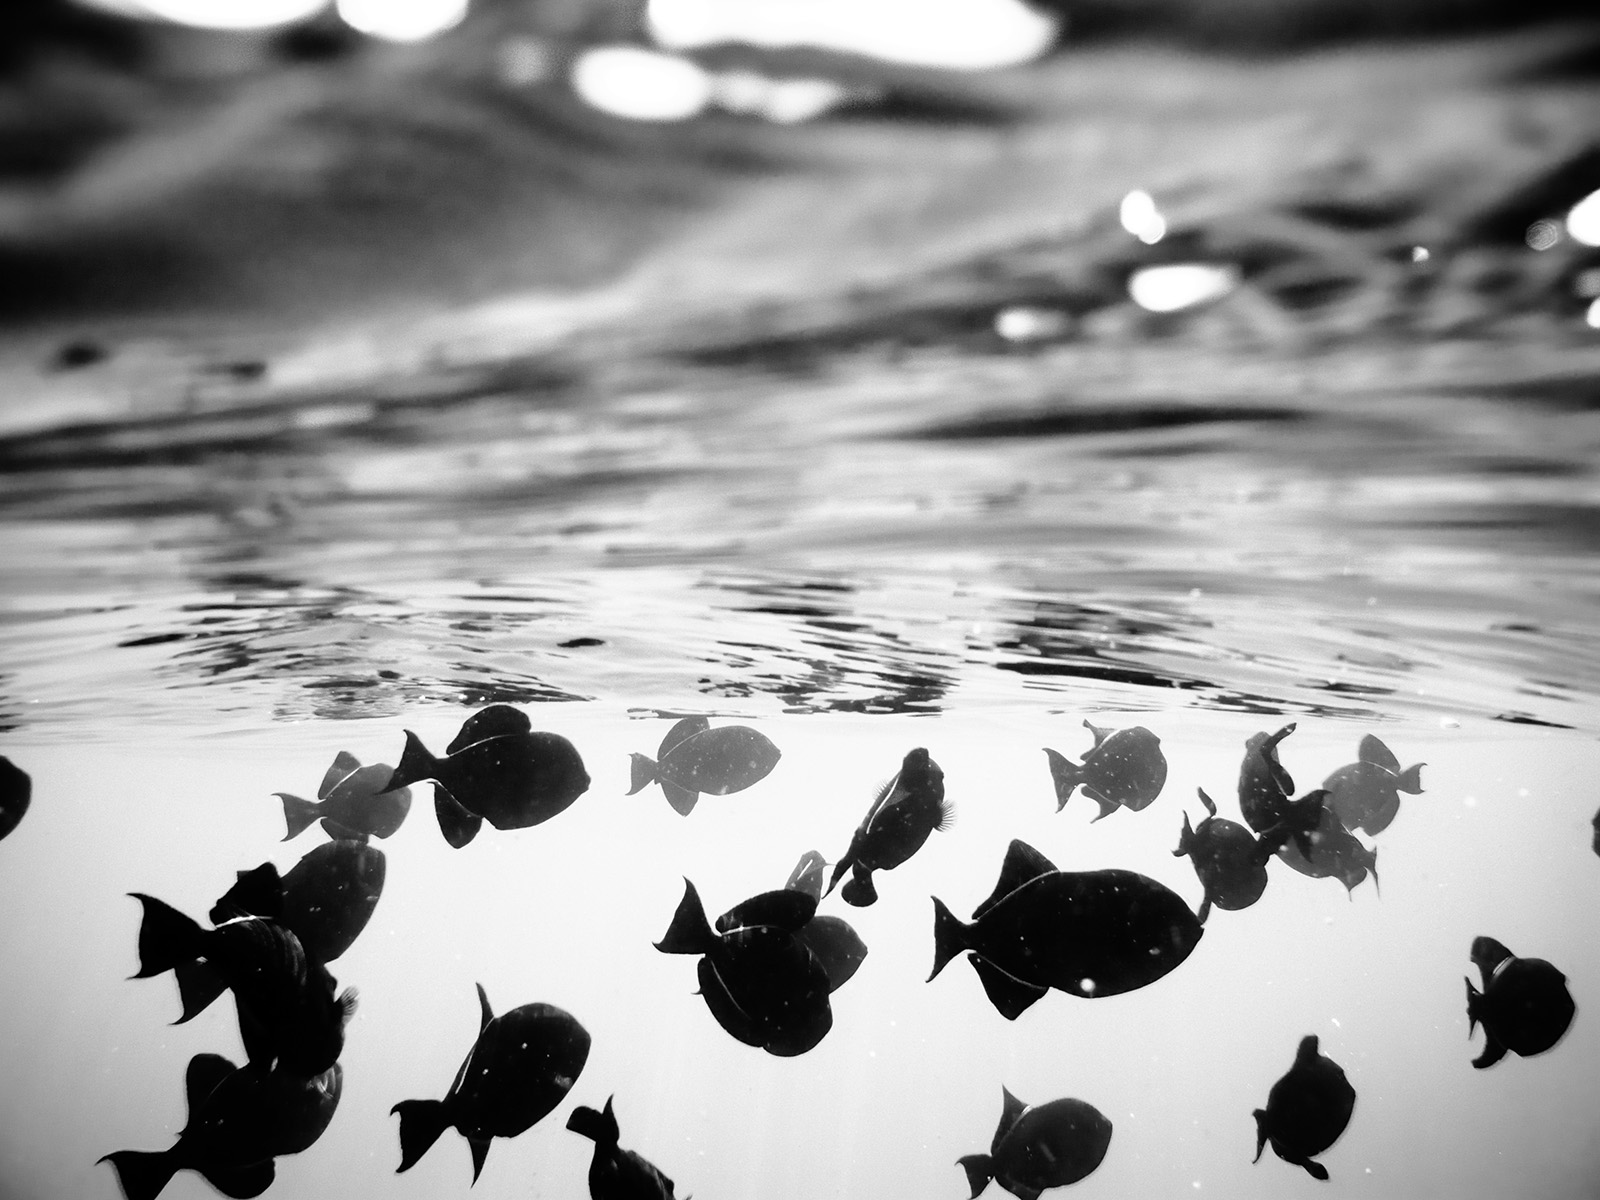 Black And White Underwater Photography Chris Keeney Photography - Amazing black white underwater photography